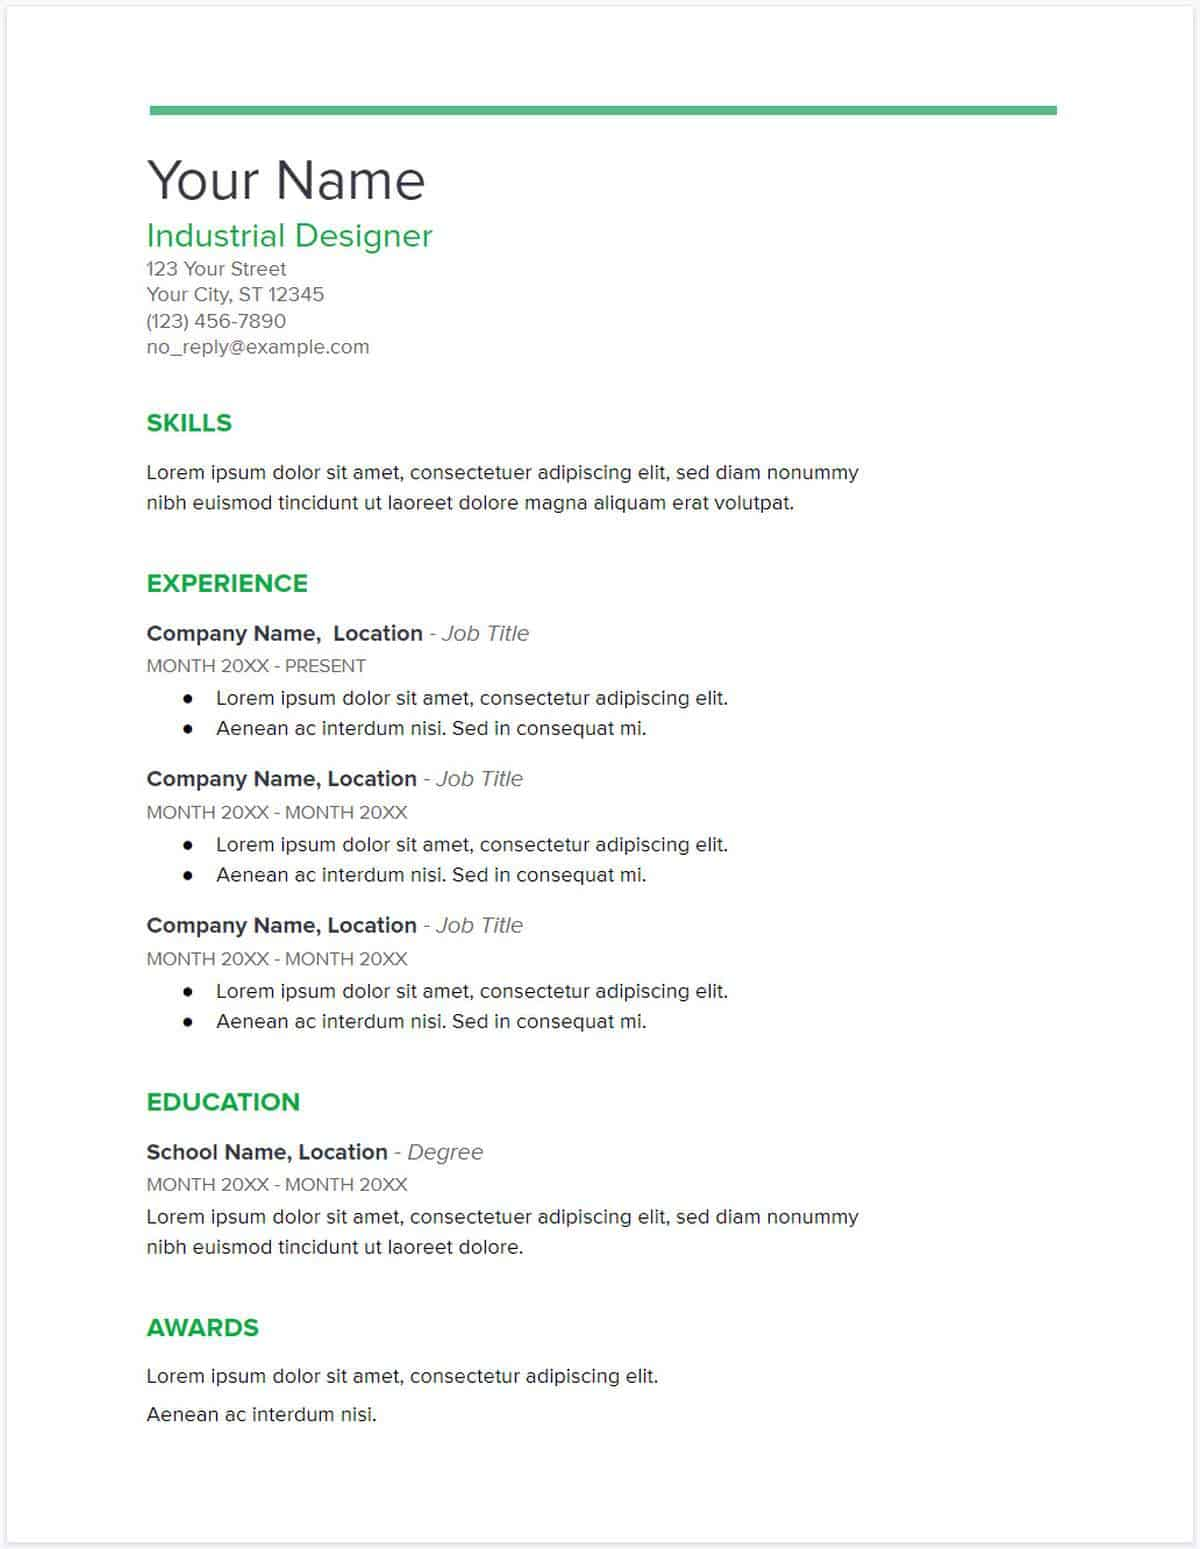 Spearmint Google Docs Resume Template | Google Docs Resume Templates [Downloadable PDFs] | Google Docs resume template free | templates for Google Docs